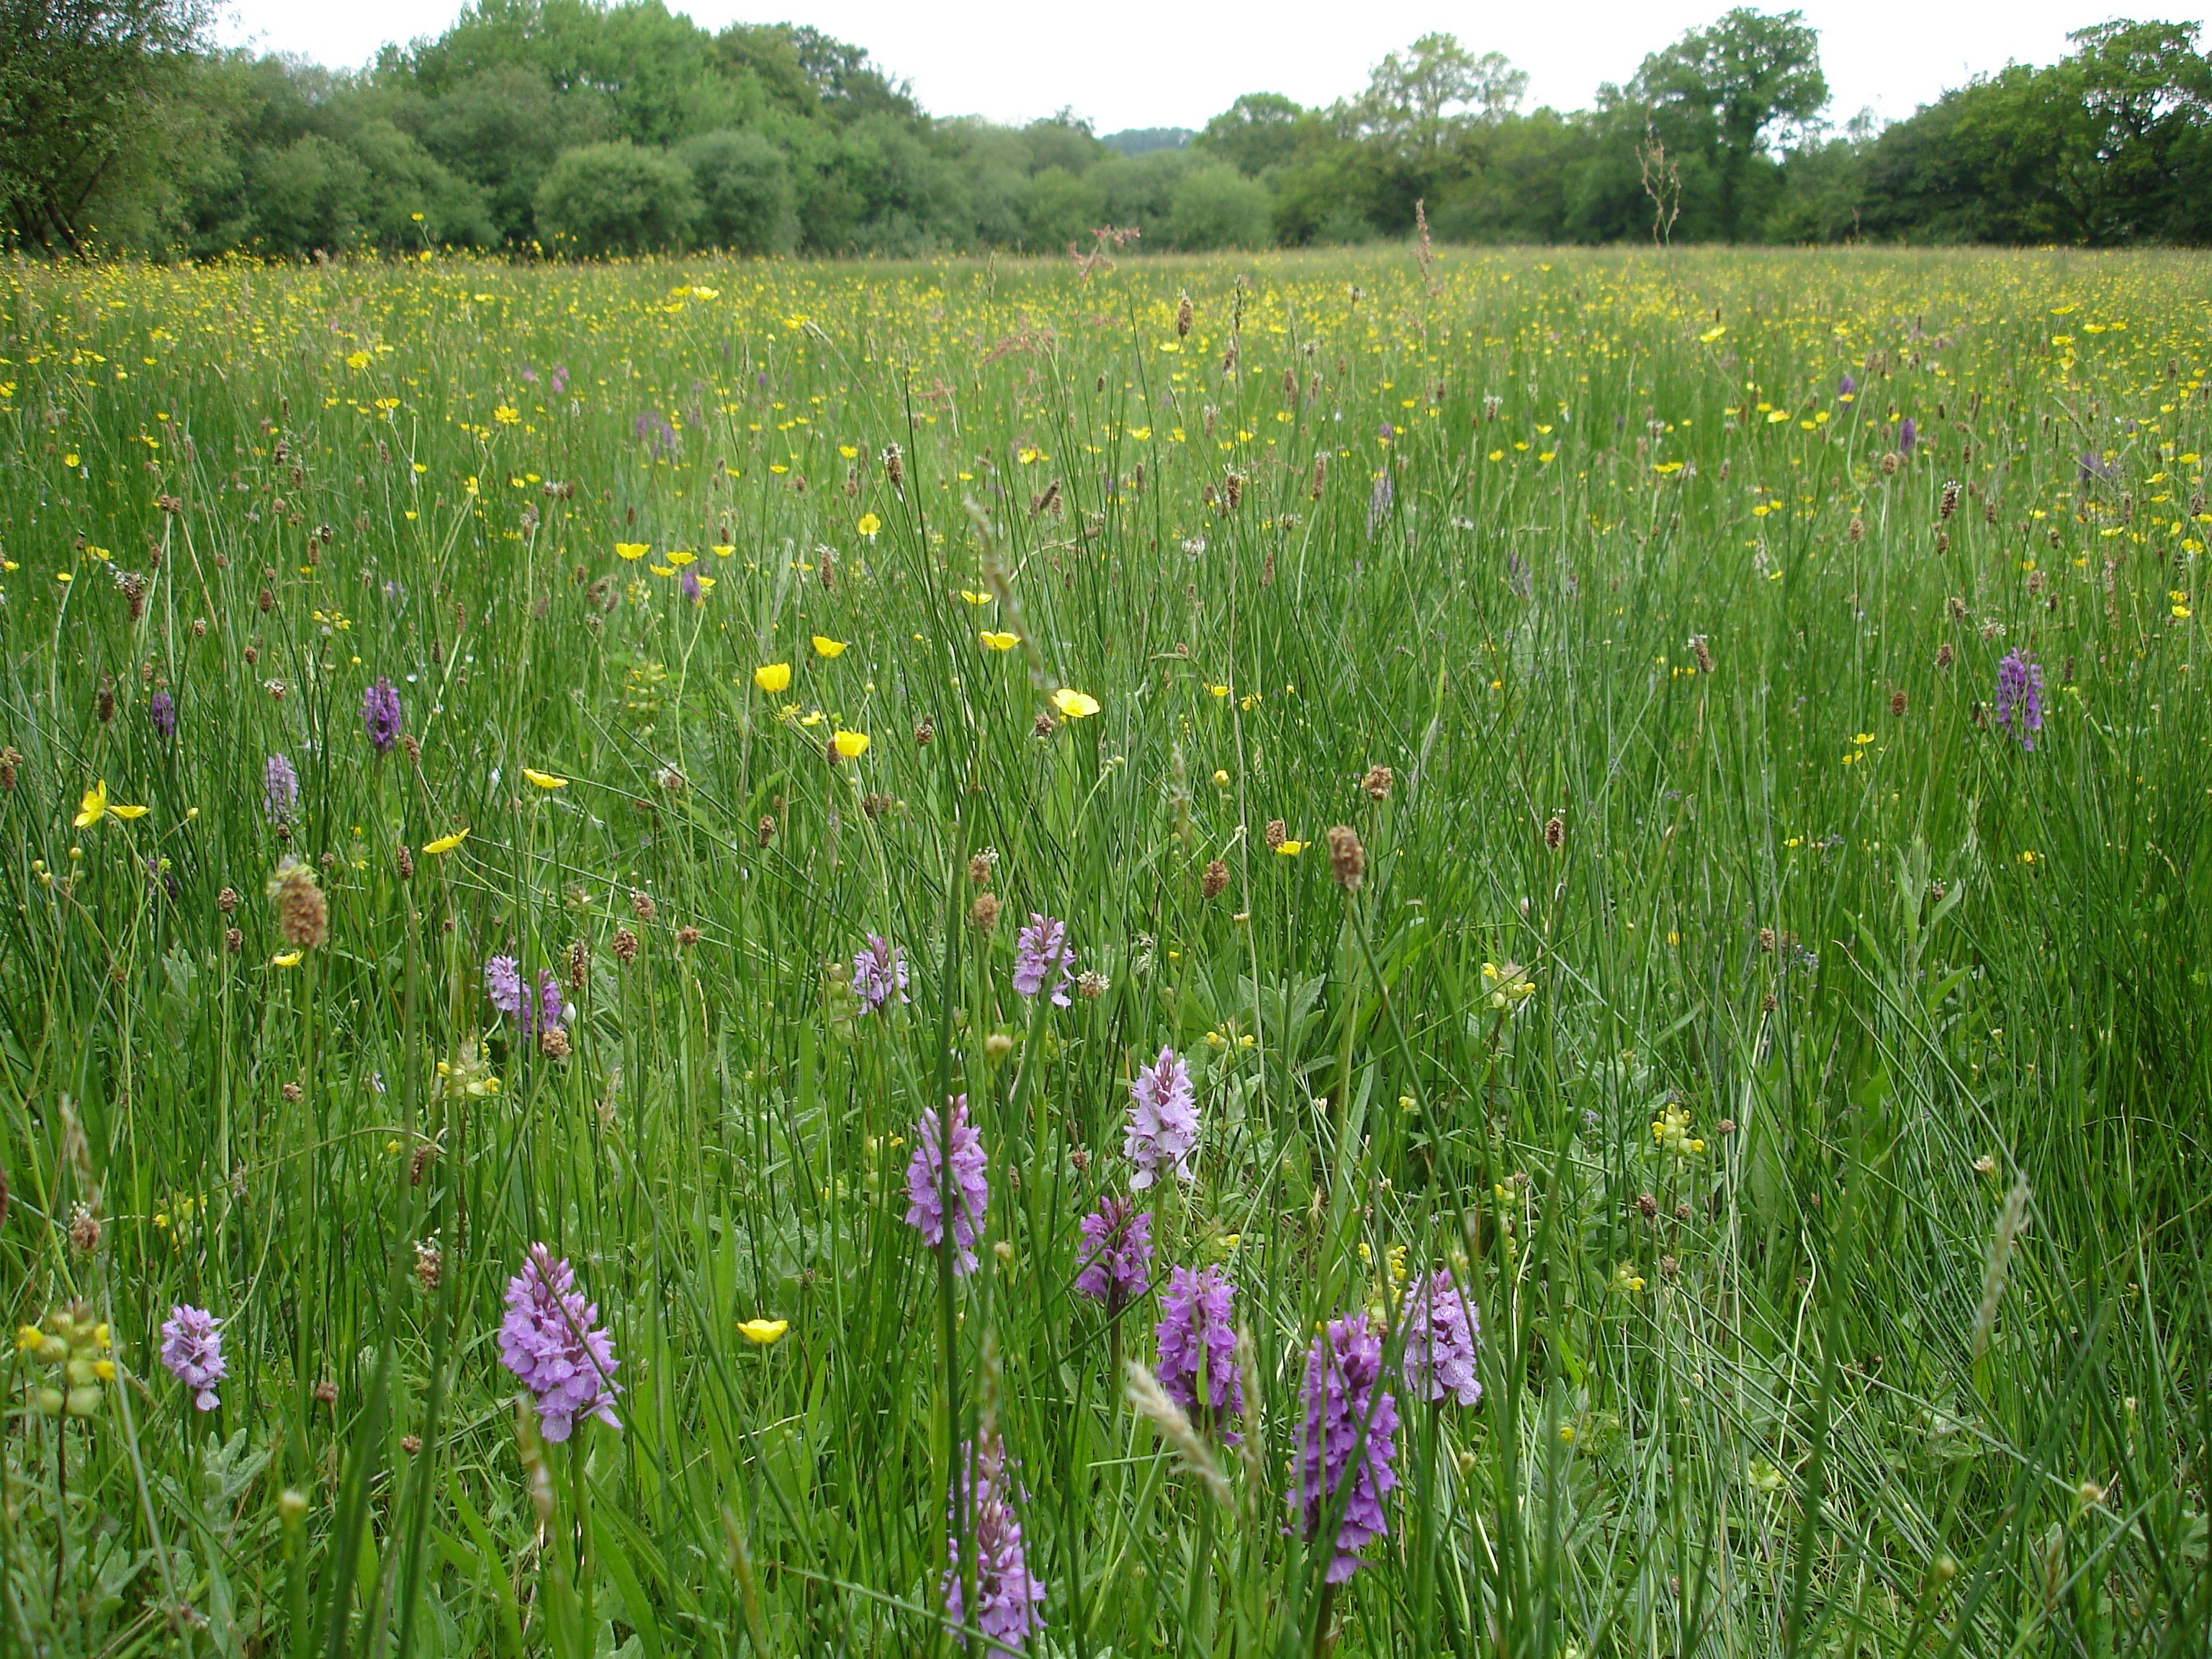 Wildflower rich grassland in North Devon. With the right wildflower seed mix - and careful management - new wildflower meadows can be created with your support